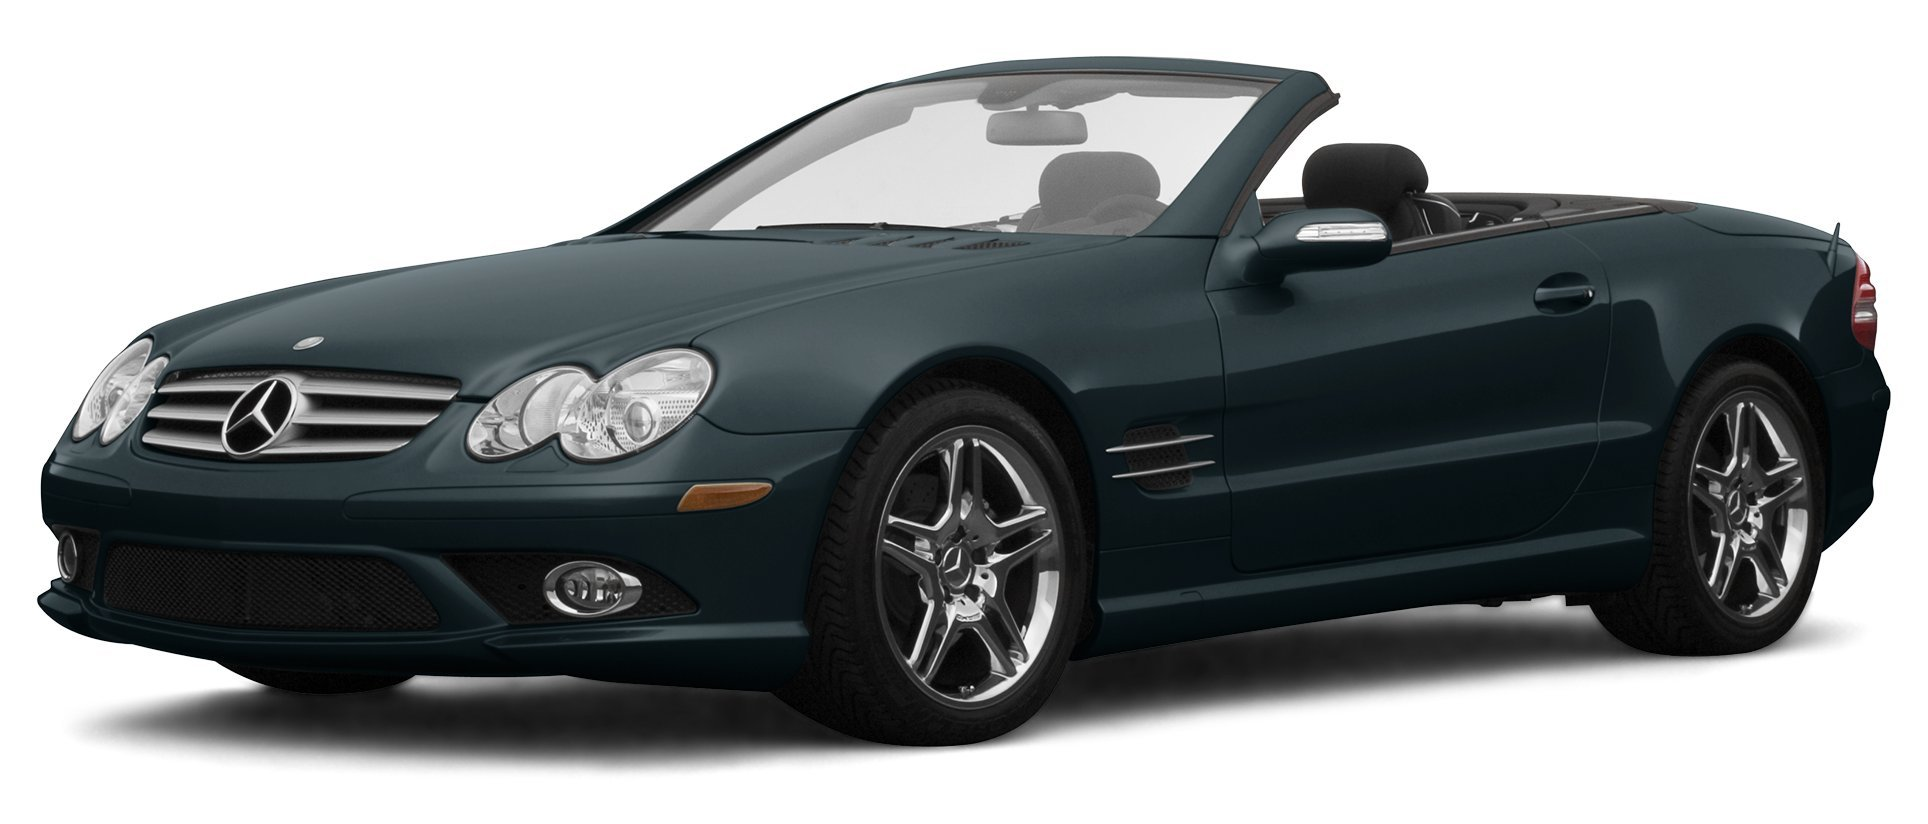 2007 Mercedes Benz Sl550 Reviews Images And